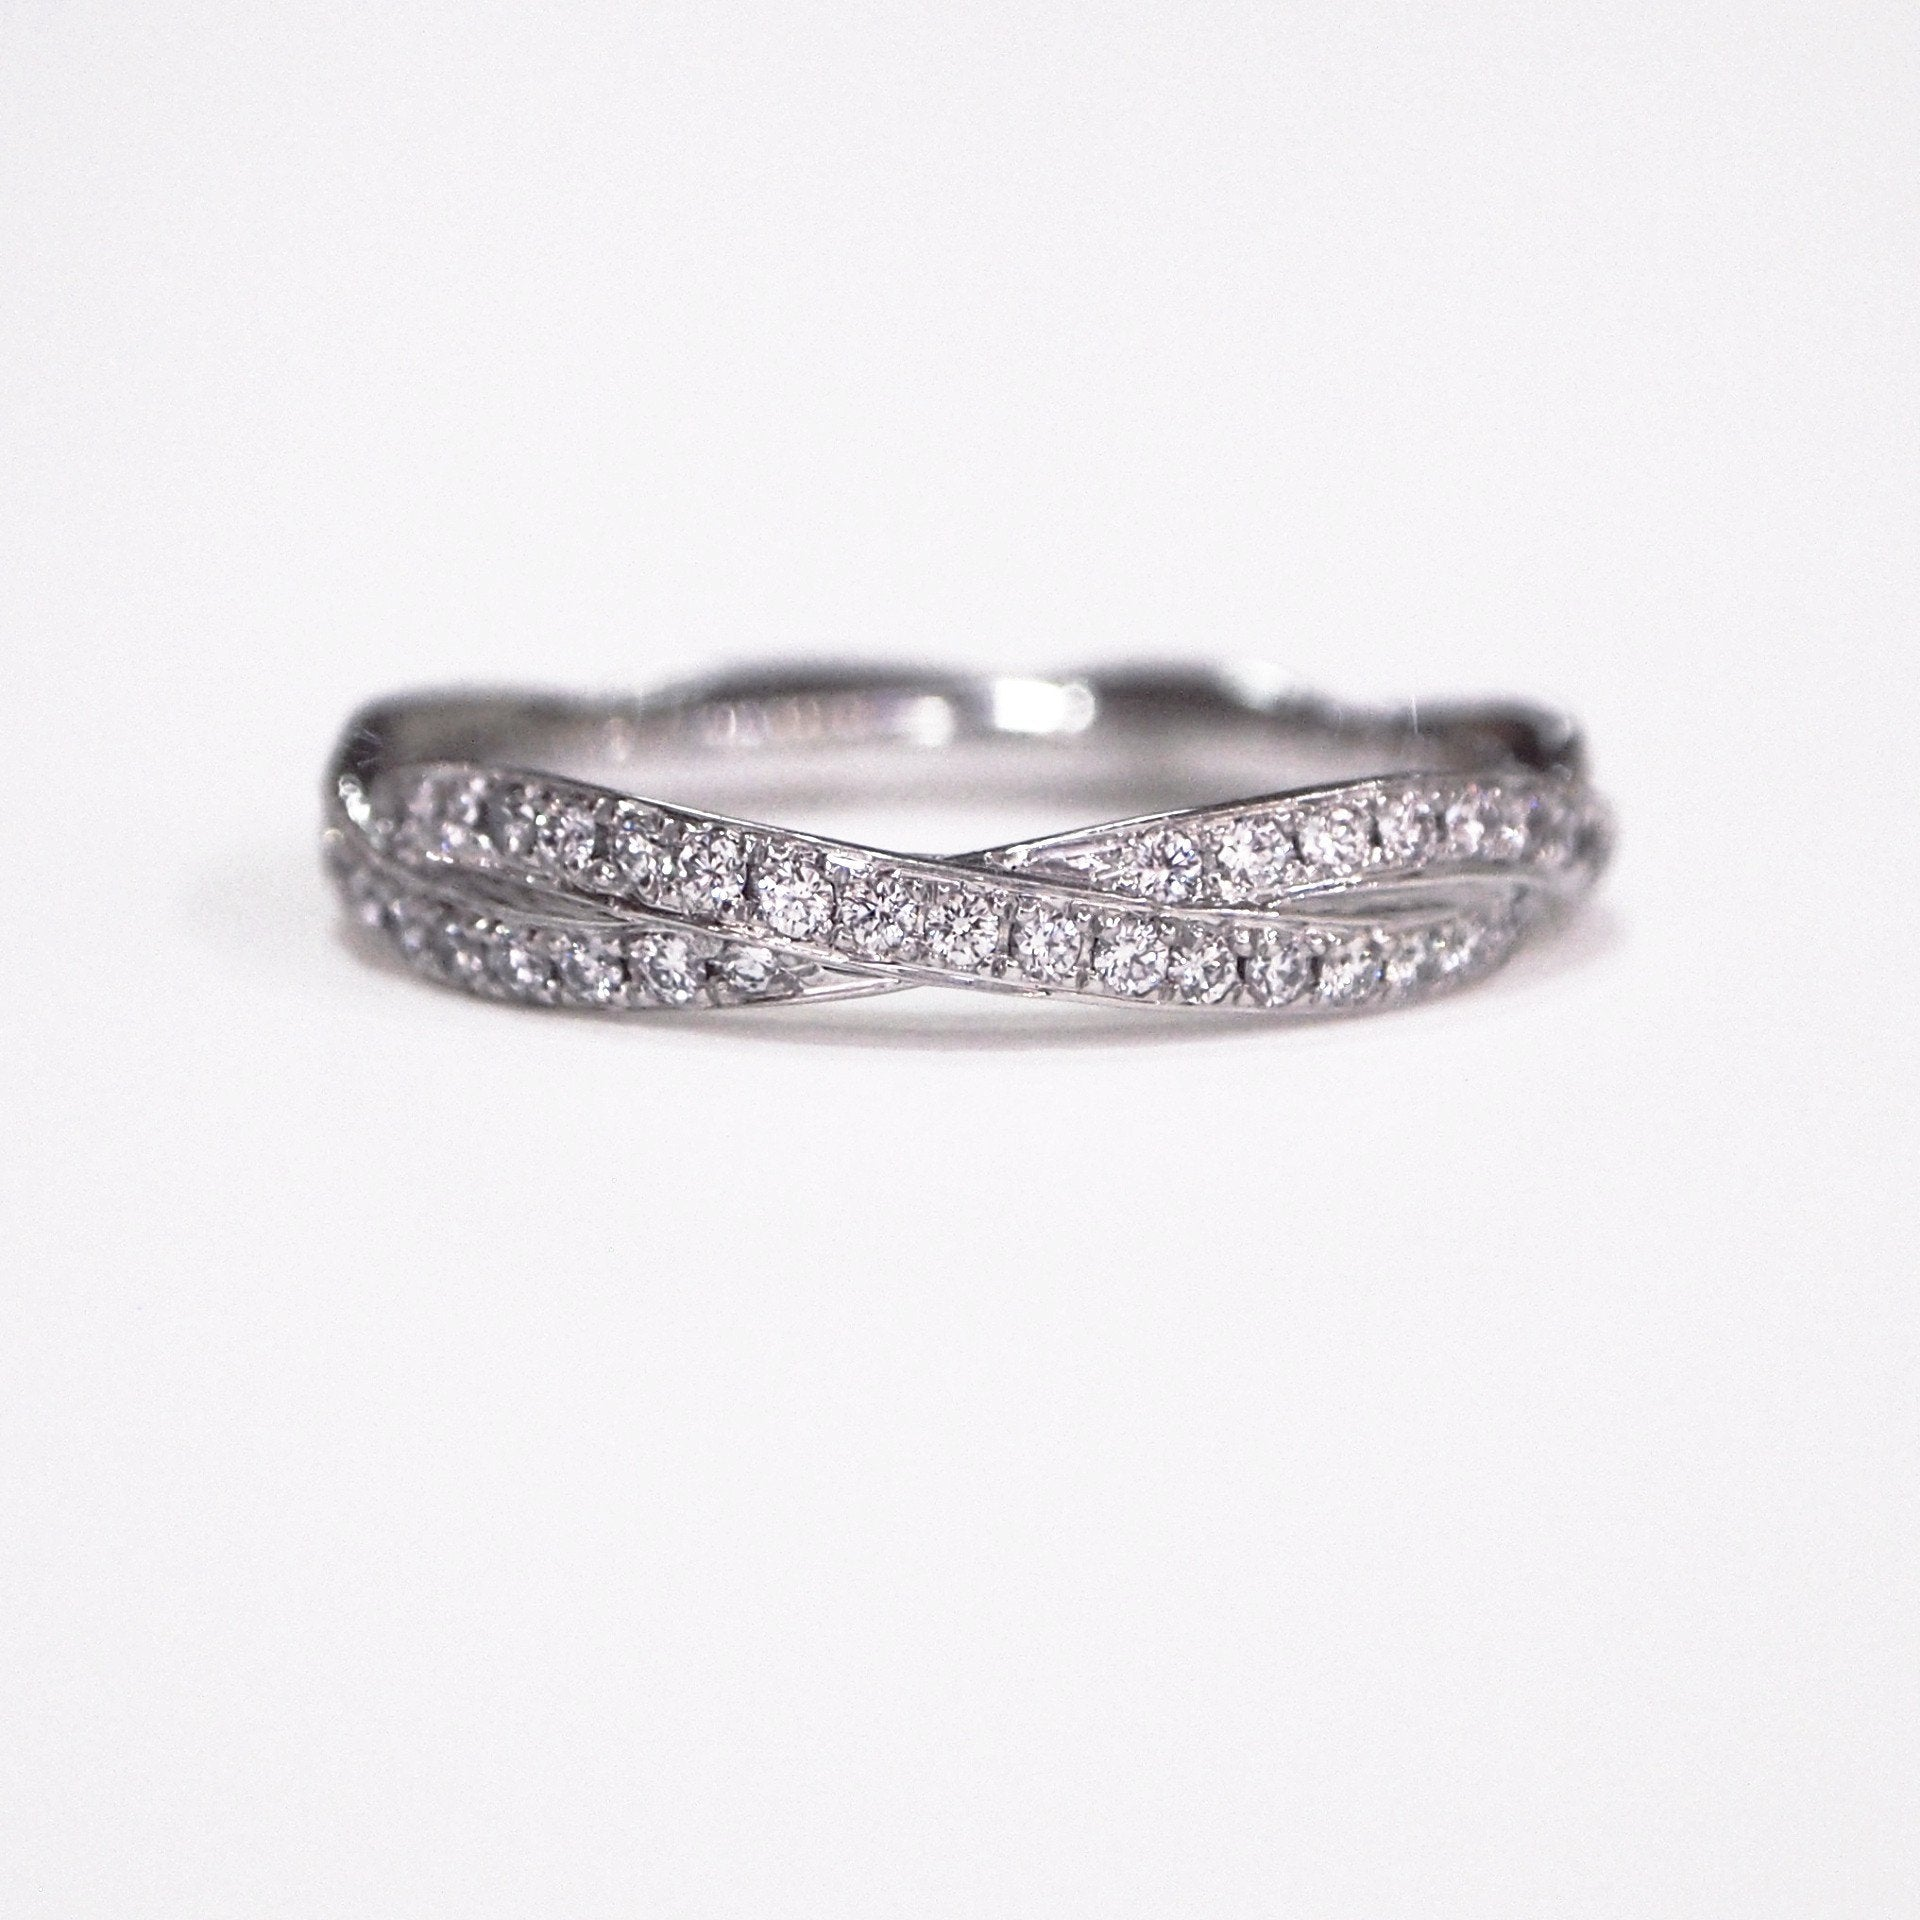 engraved hoop diamond platinum eternity ring band carat m shipping size s wedding bands deco antique anniversary art free pin full